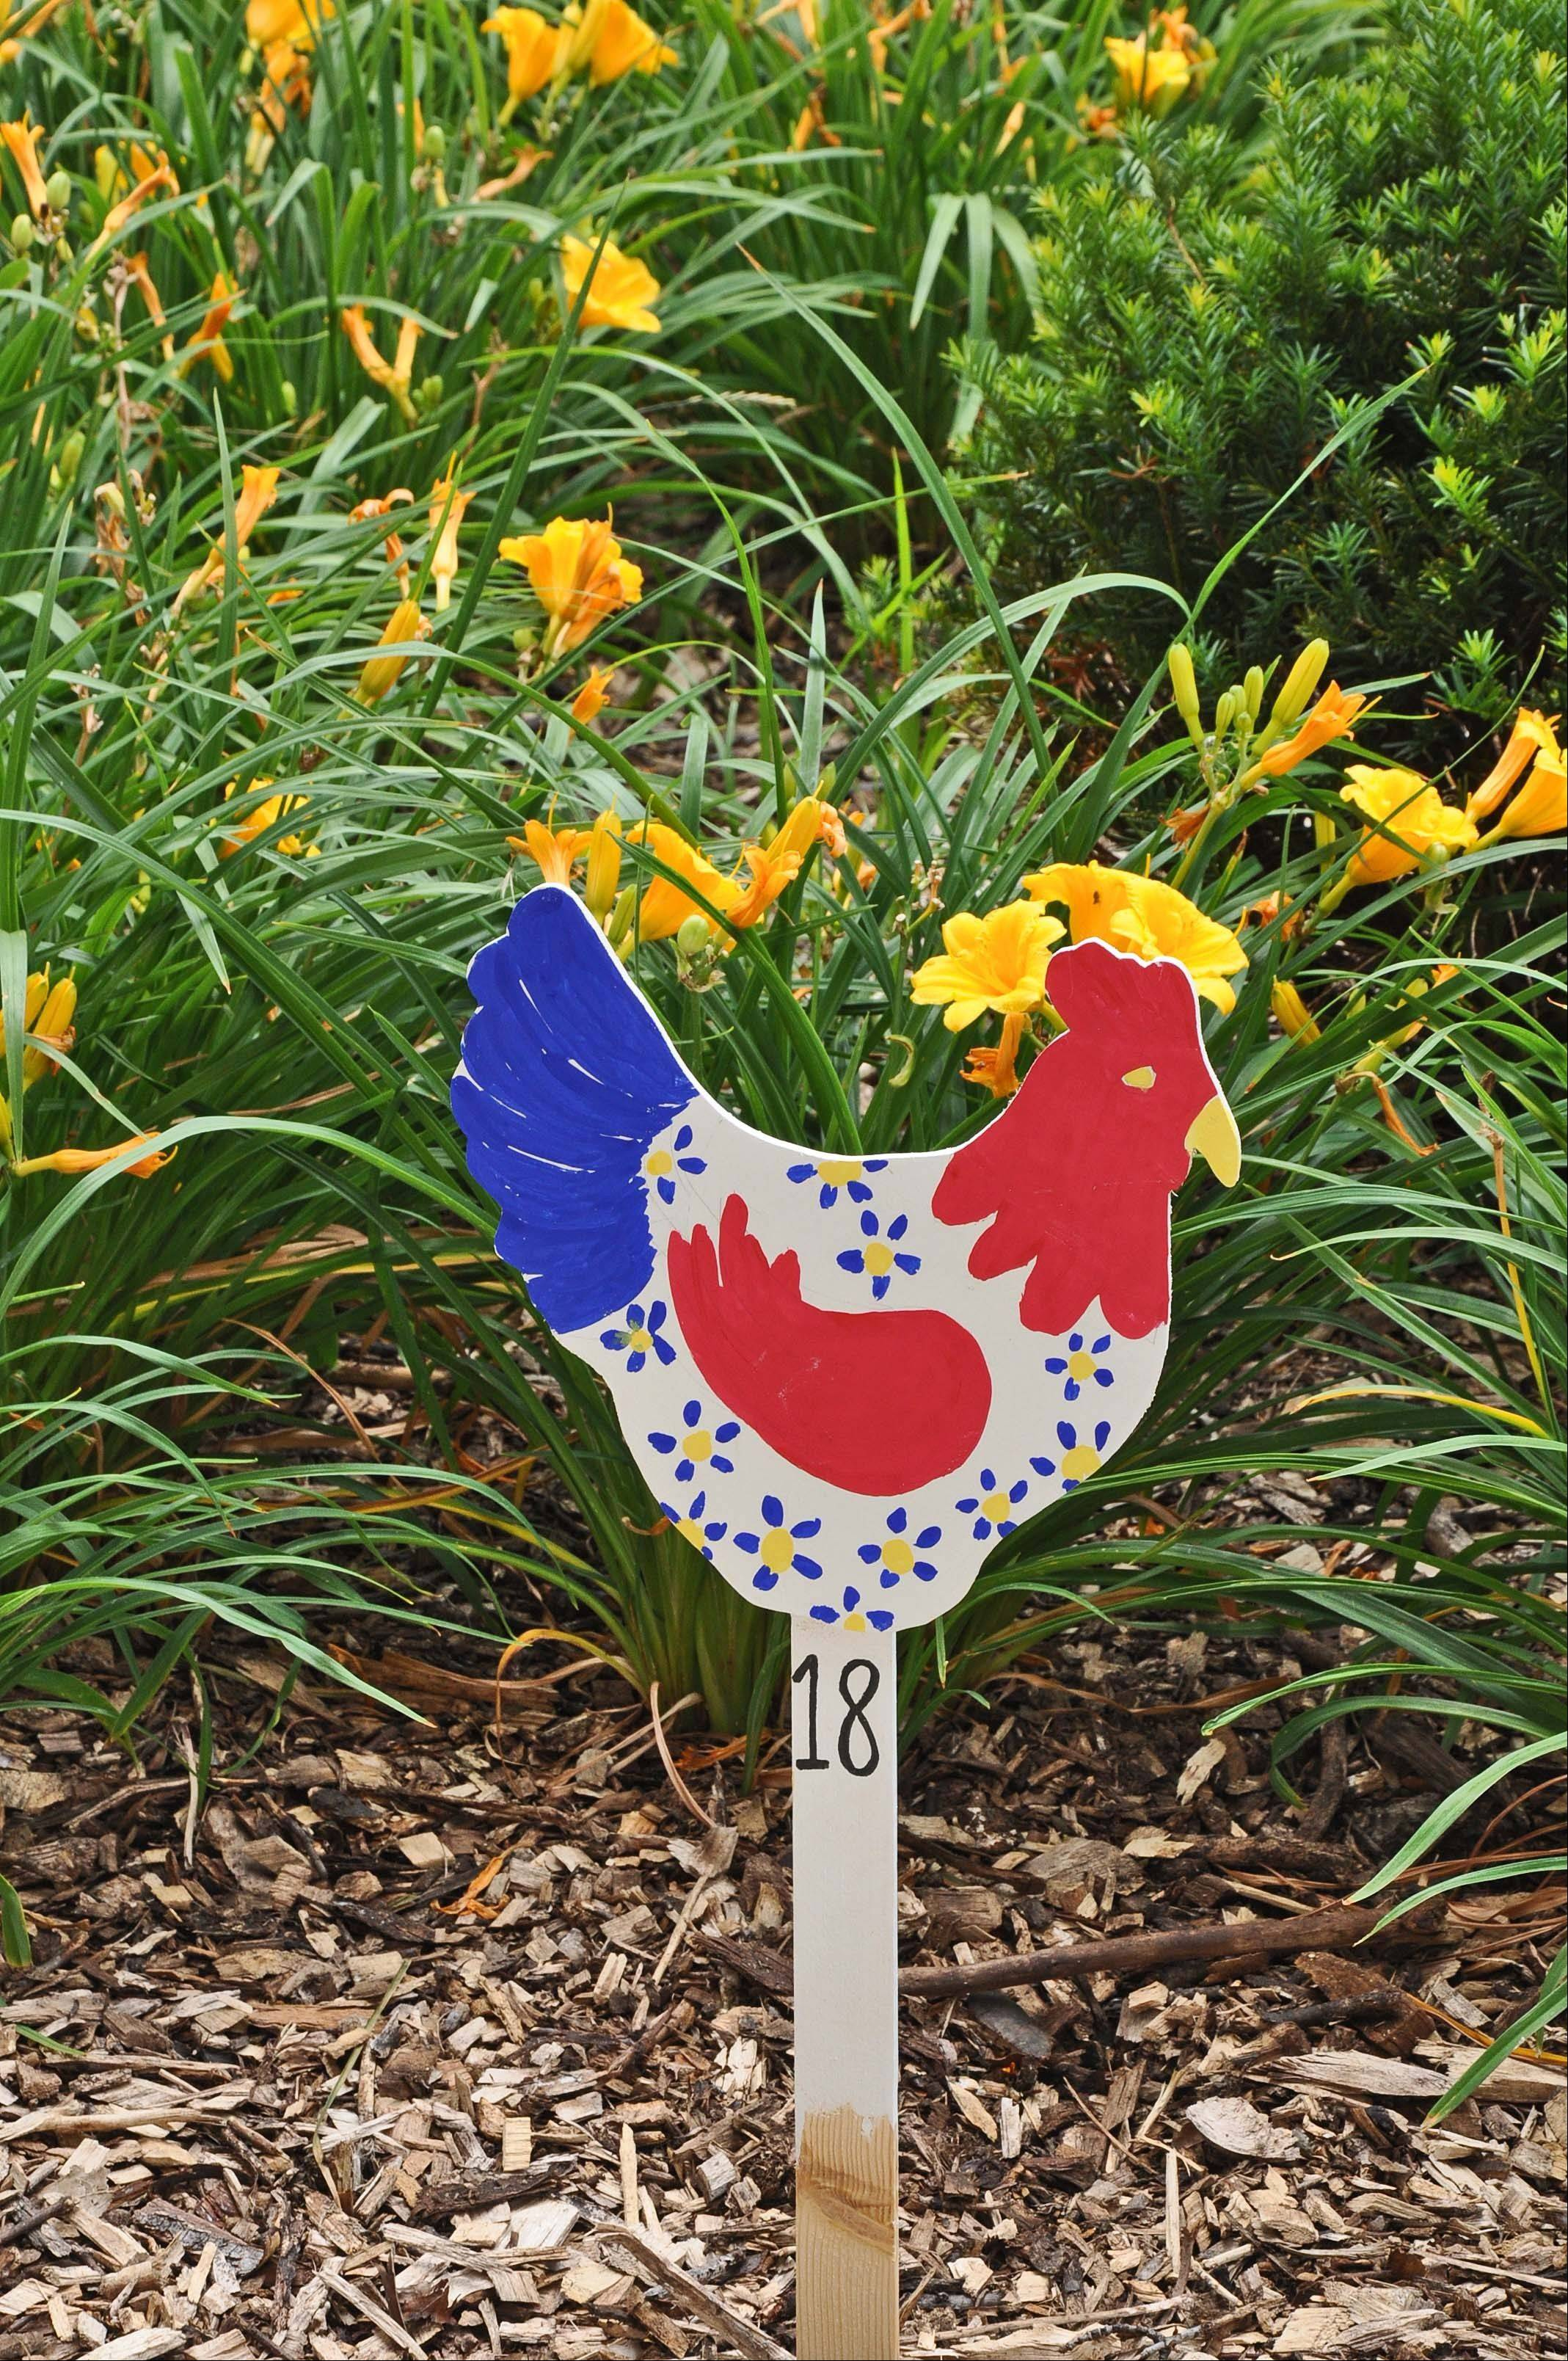 Decorated chickens are found throughout the Holmstad, a senior living community in Batavia. The exhibit is in response to the bulldog sculptures found throughout Batavia, and is a nod to the discussions over Batavia's city ordinance on chickens.